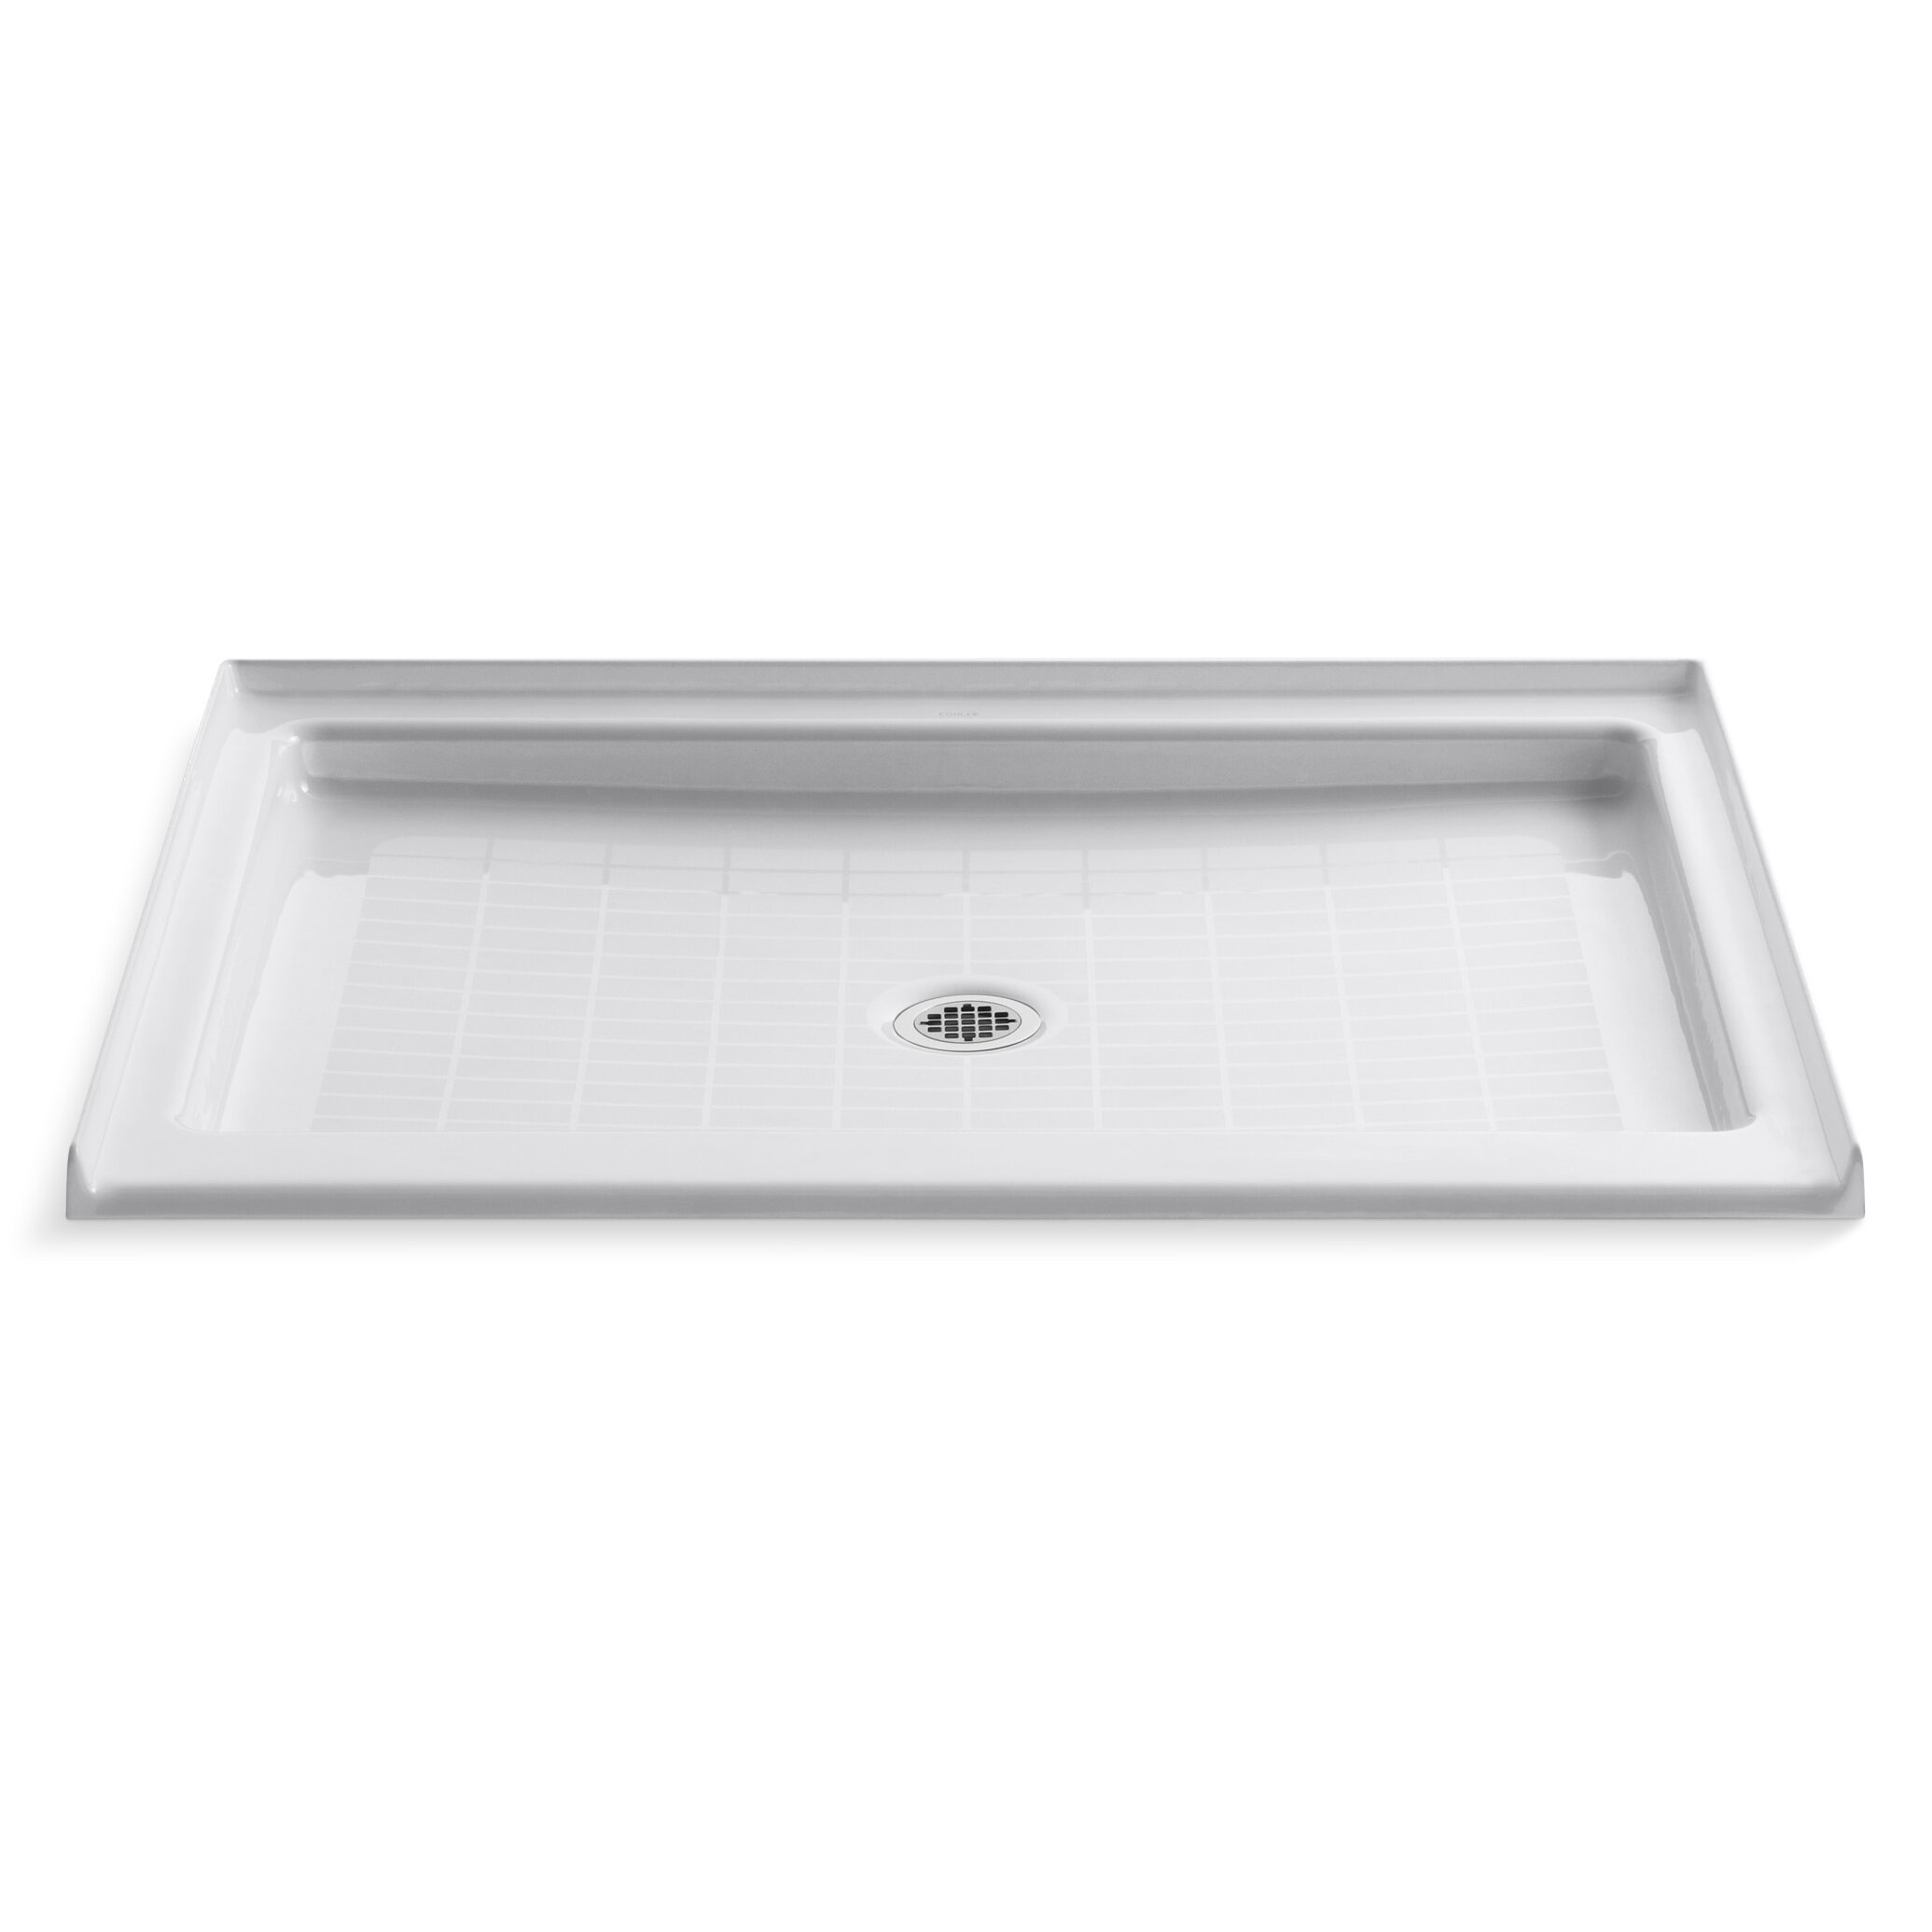 drop ideas acrylic freestanding lowes villager tub arabella definition tips standard doubleslipper slipper designs bathroom specs from large soaking cast garden alcove bathtub bellwether clawfoot double tubs pictures kohler american in iron sizes front weight foot hgtv